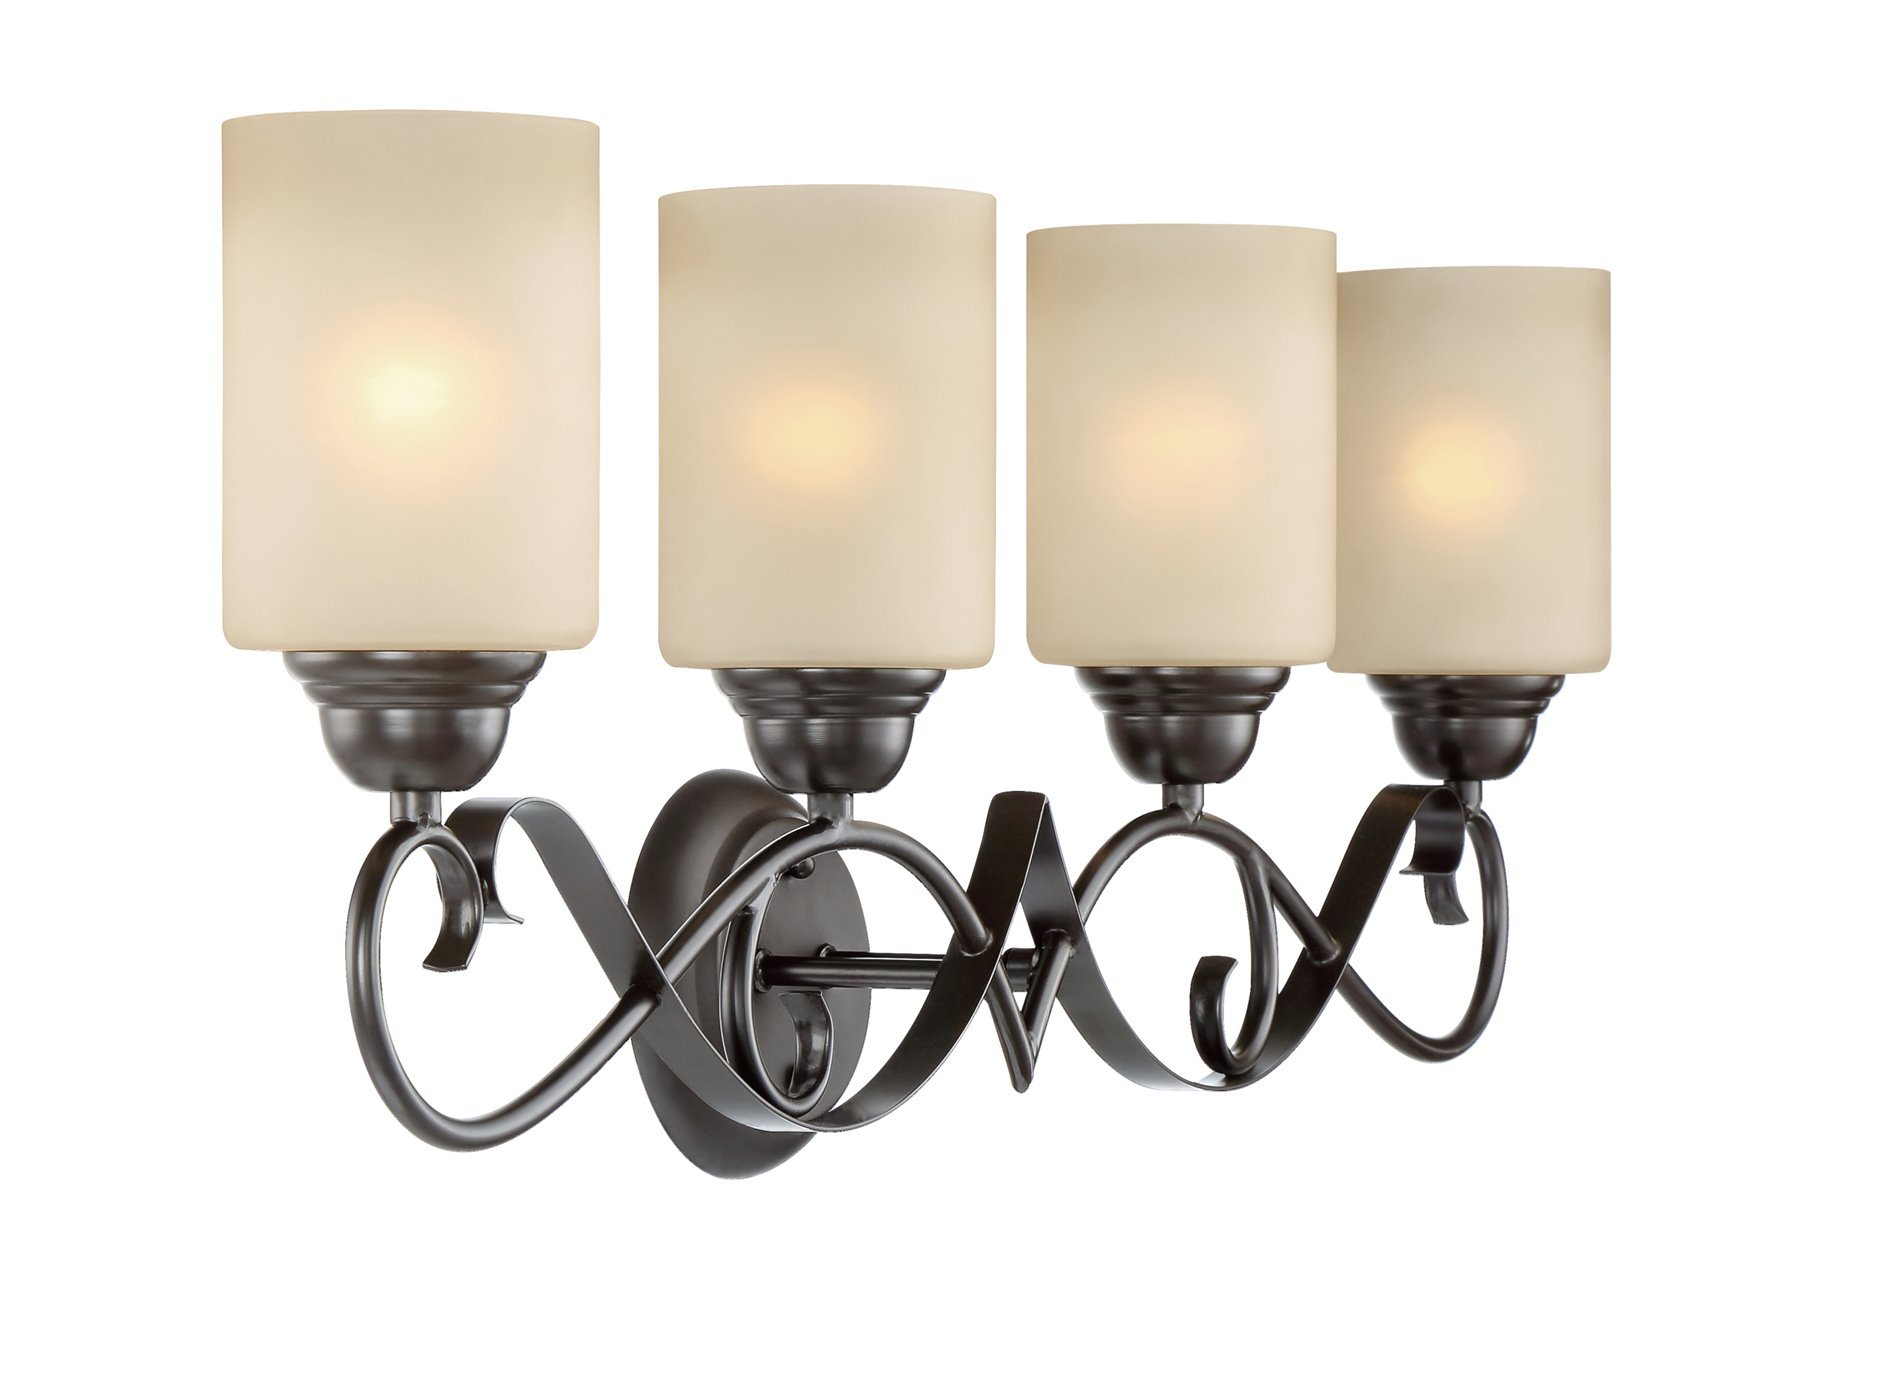 Kira Home Villa 31'' Traditional 4-Light Vanity/Bathroom Light + Amber Glass Shades, Oil Rubbed Bronze Finish by Kira Home